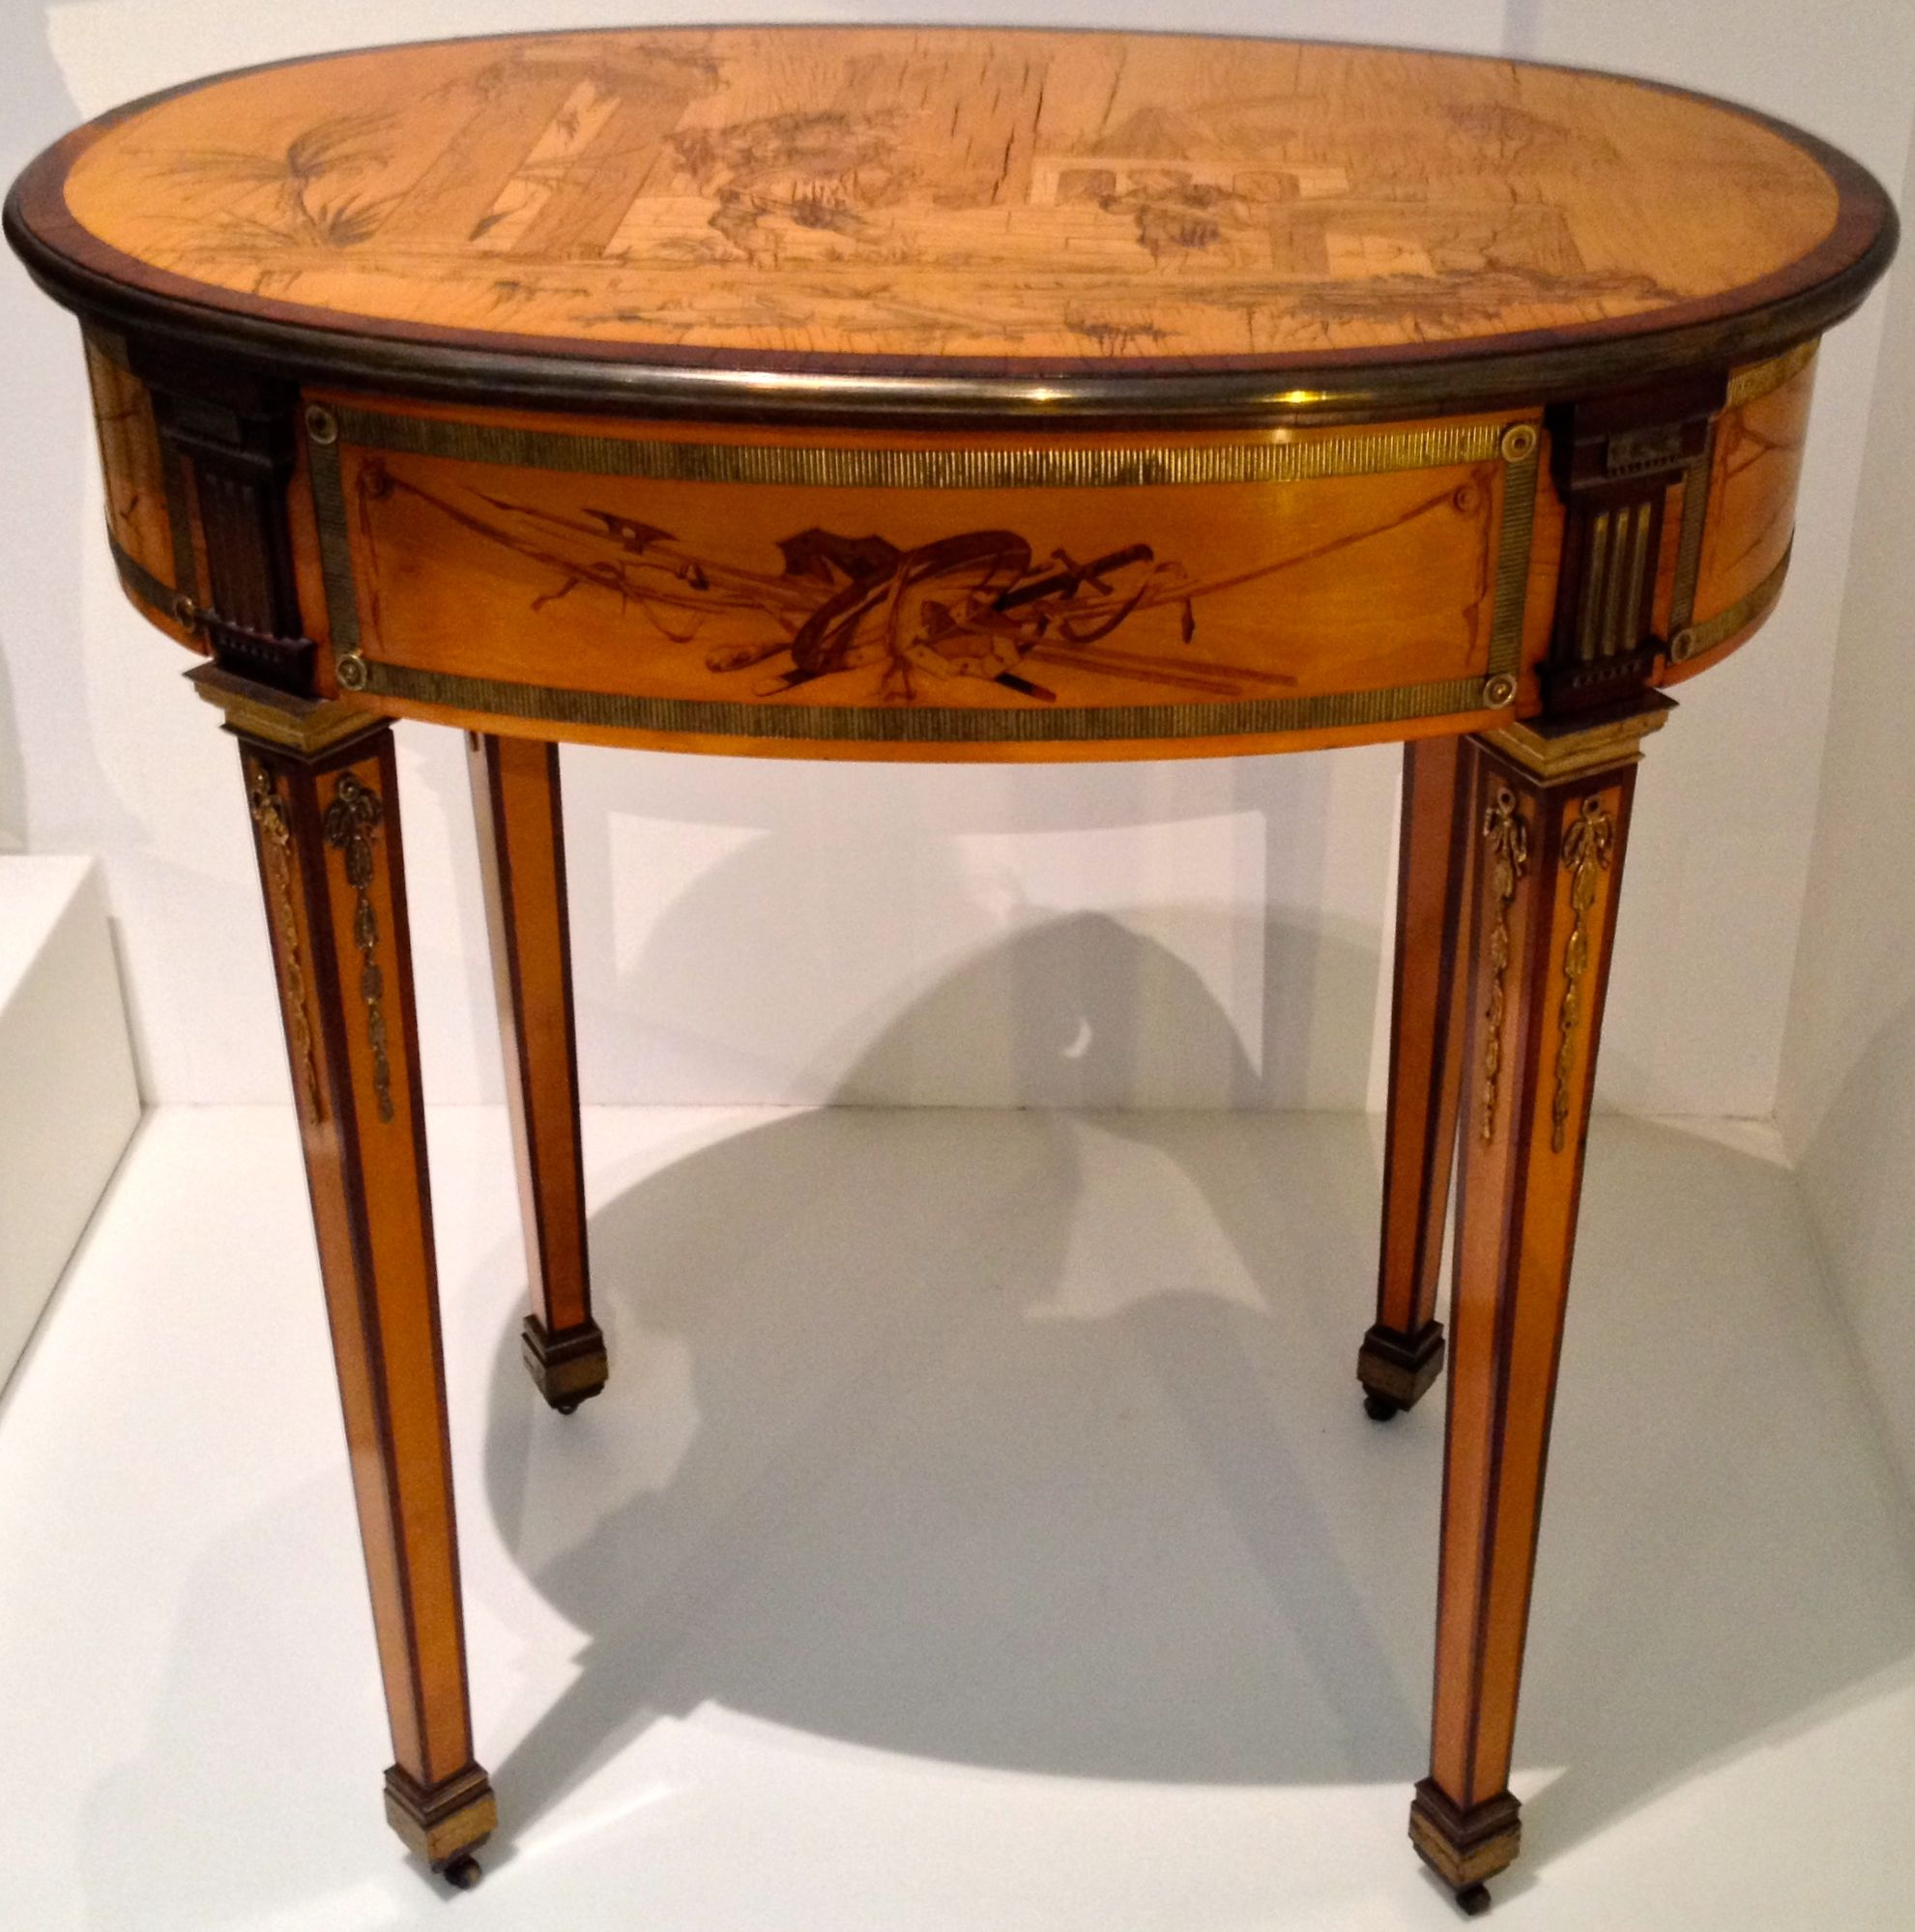 A beautiful writing table